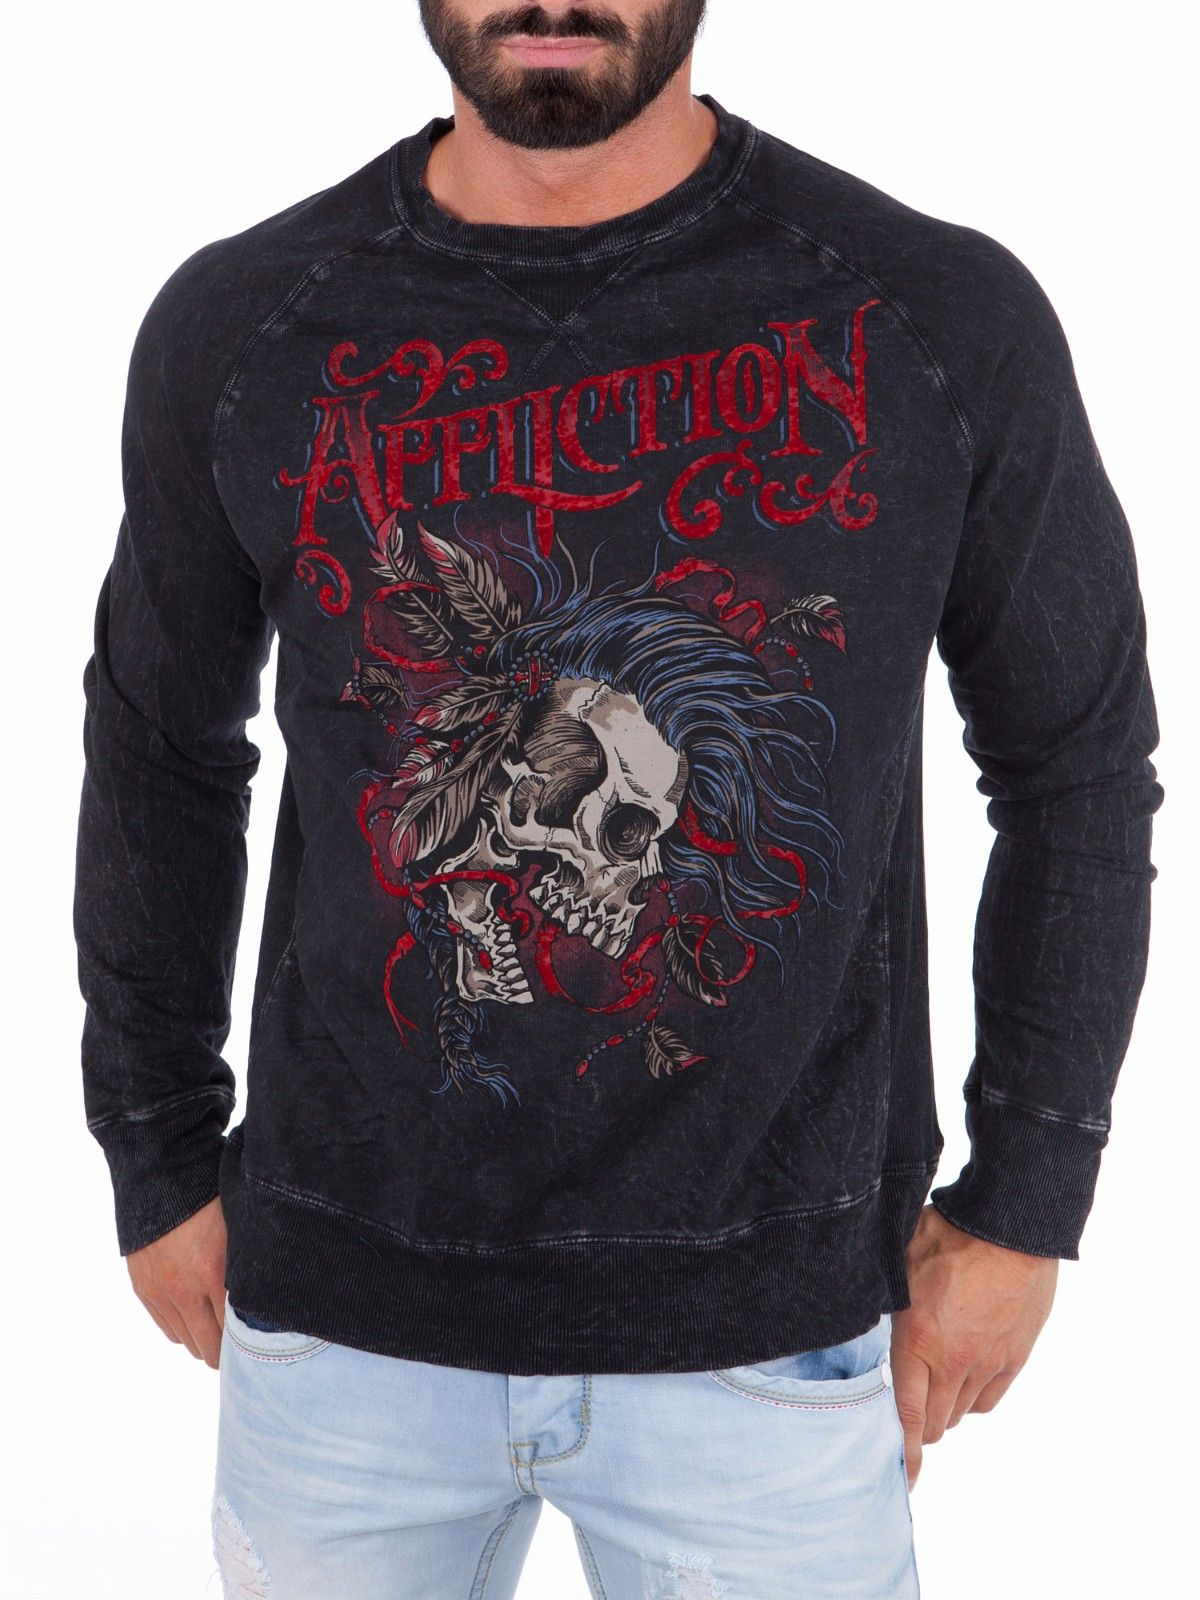 bad2a915 Battle Cry Affliction Genser - Svart | FINN.no